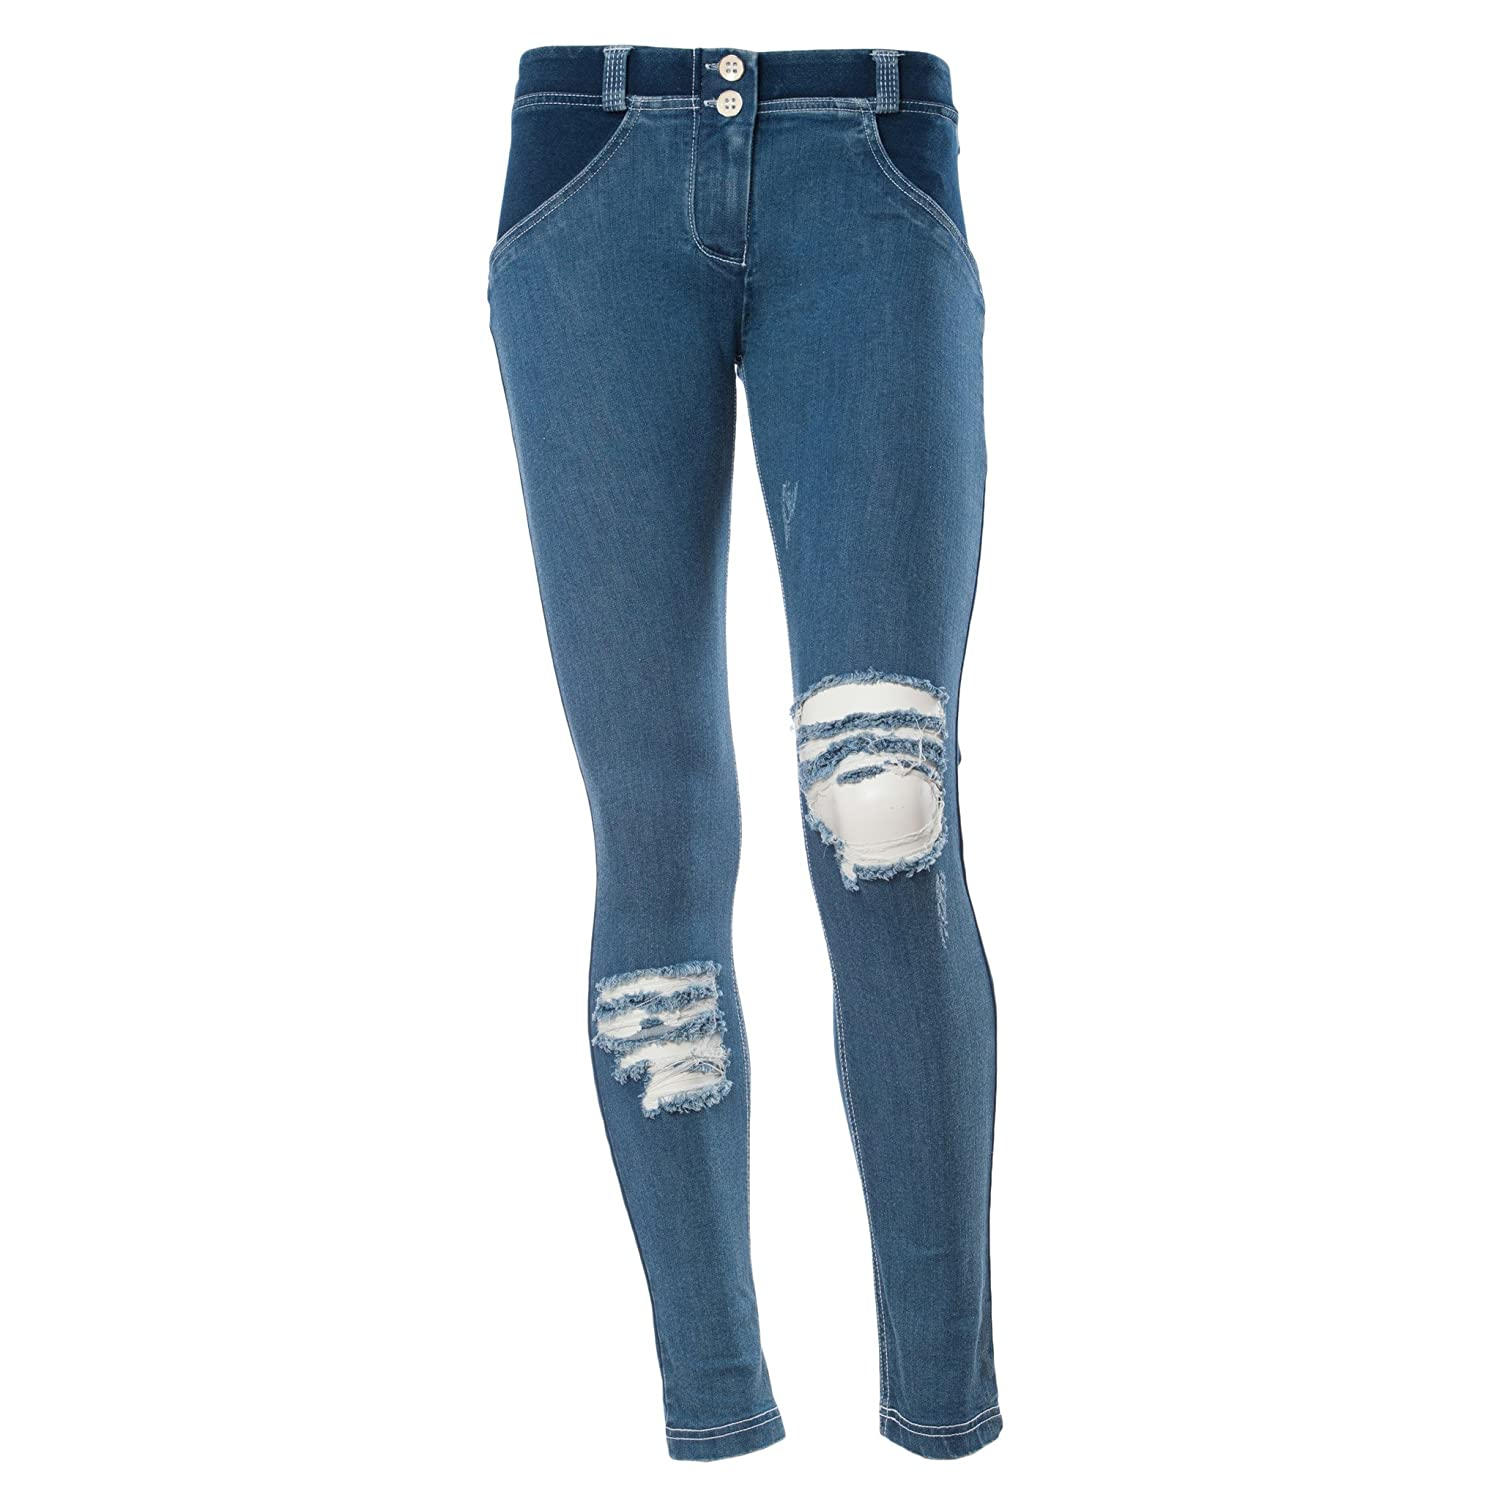 Amazon.com: Freddy WR hasta Denim – Skinny Push Up ...